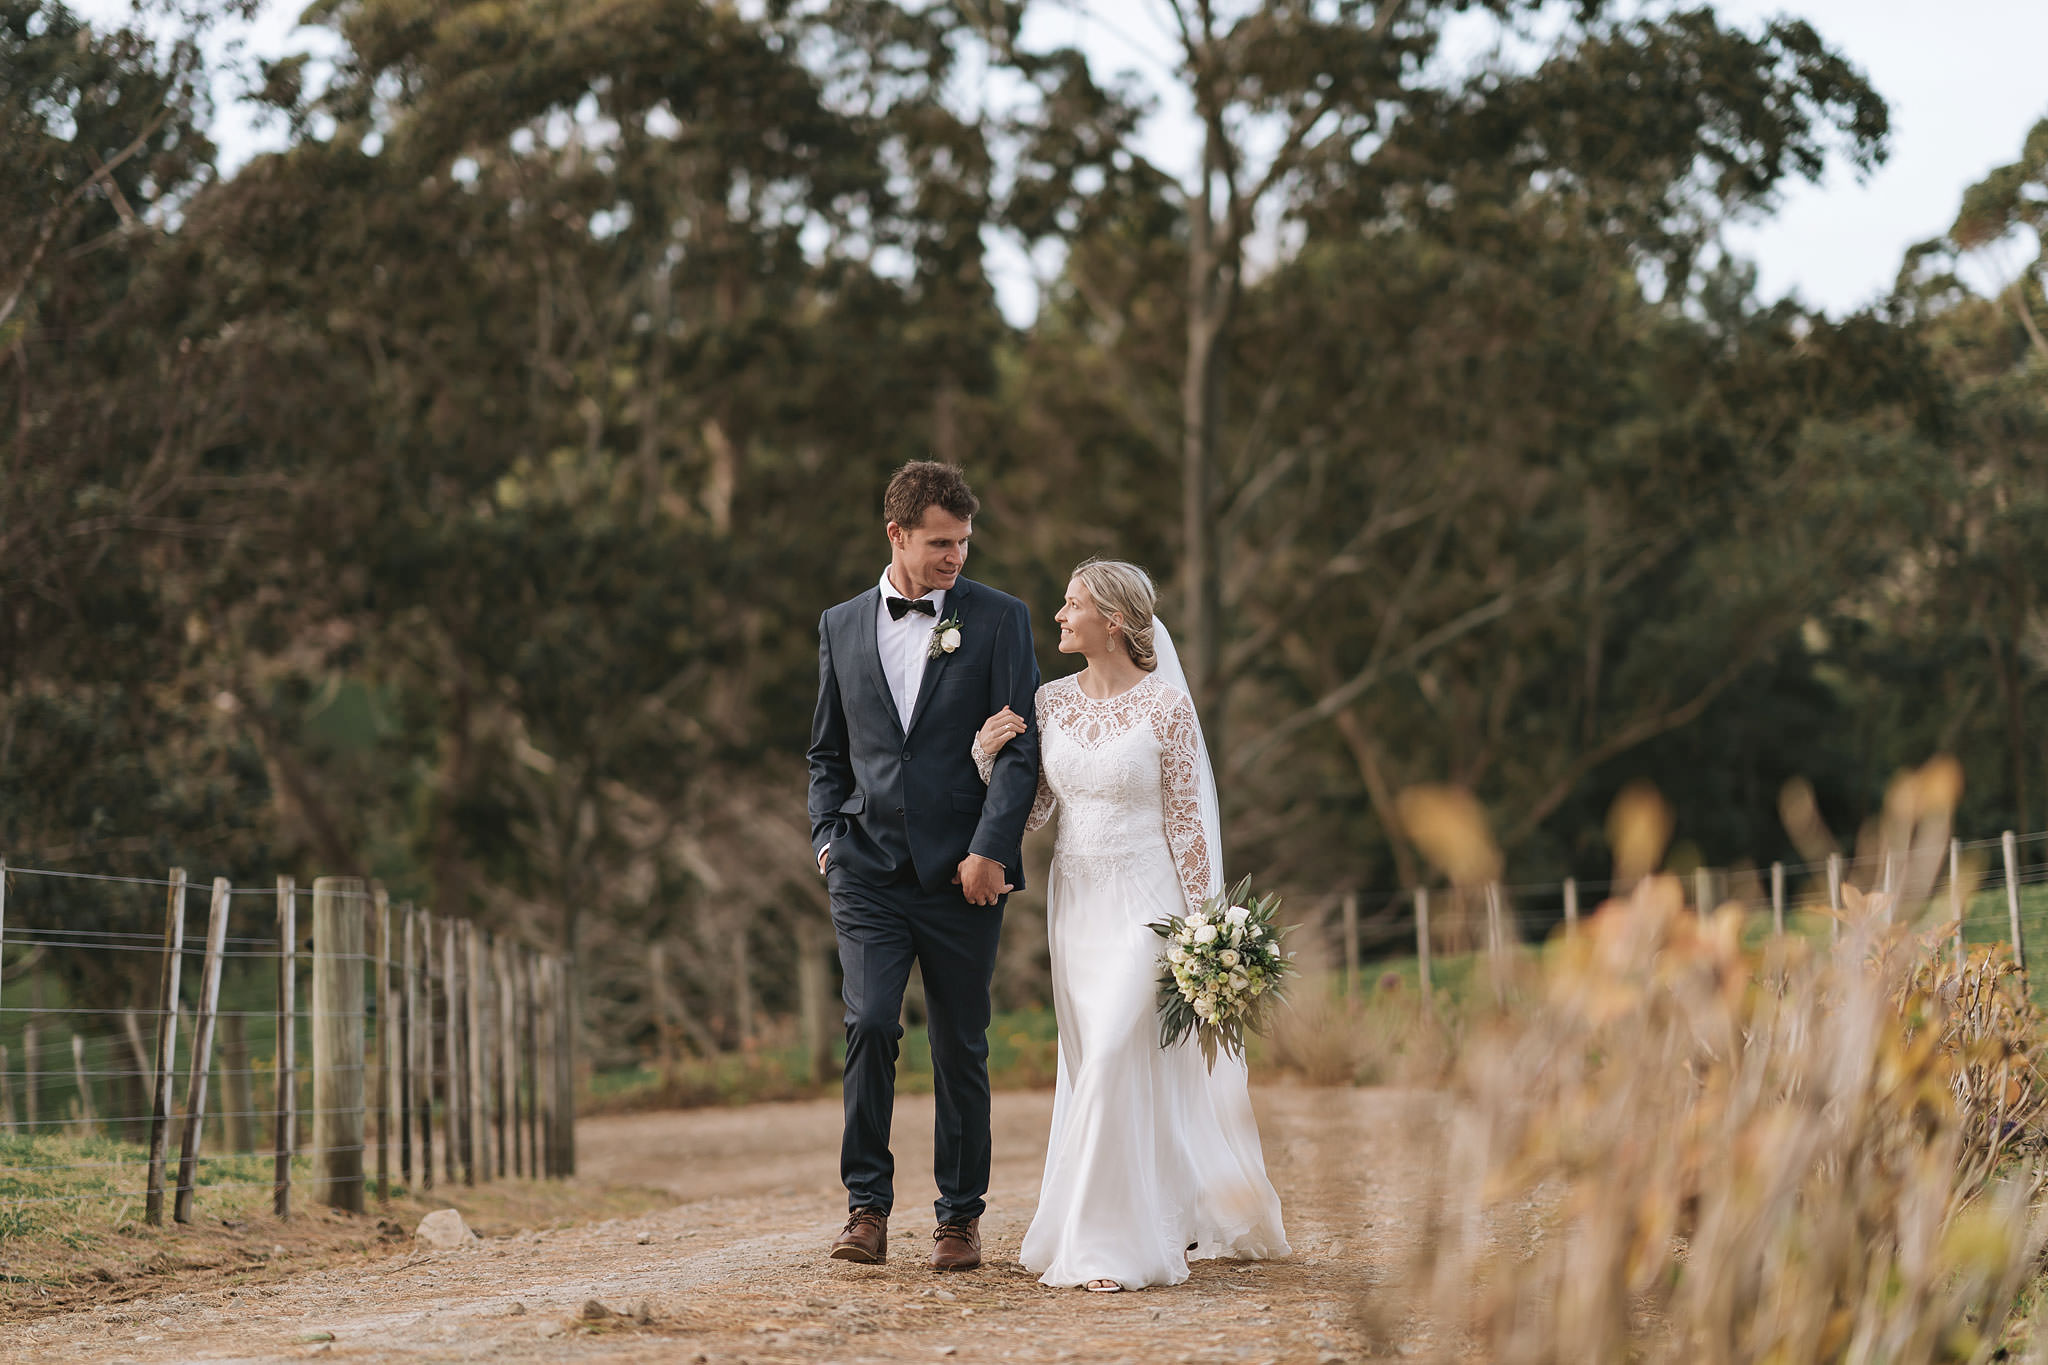 newfound-tauranga-wedding-photography-emy-aaron-207